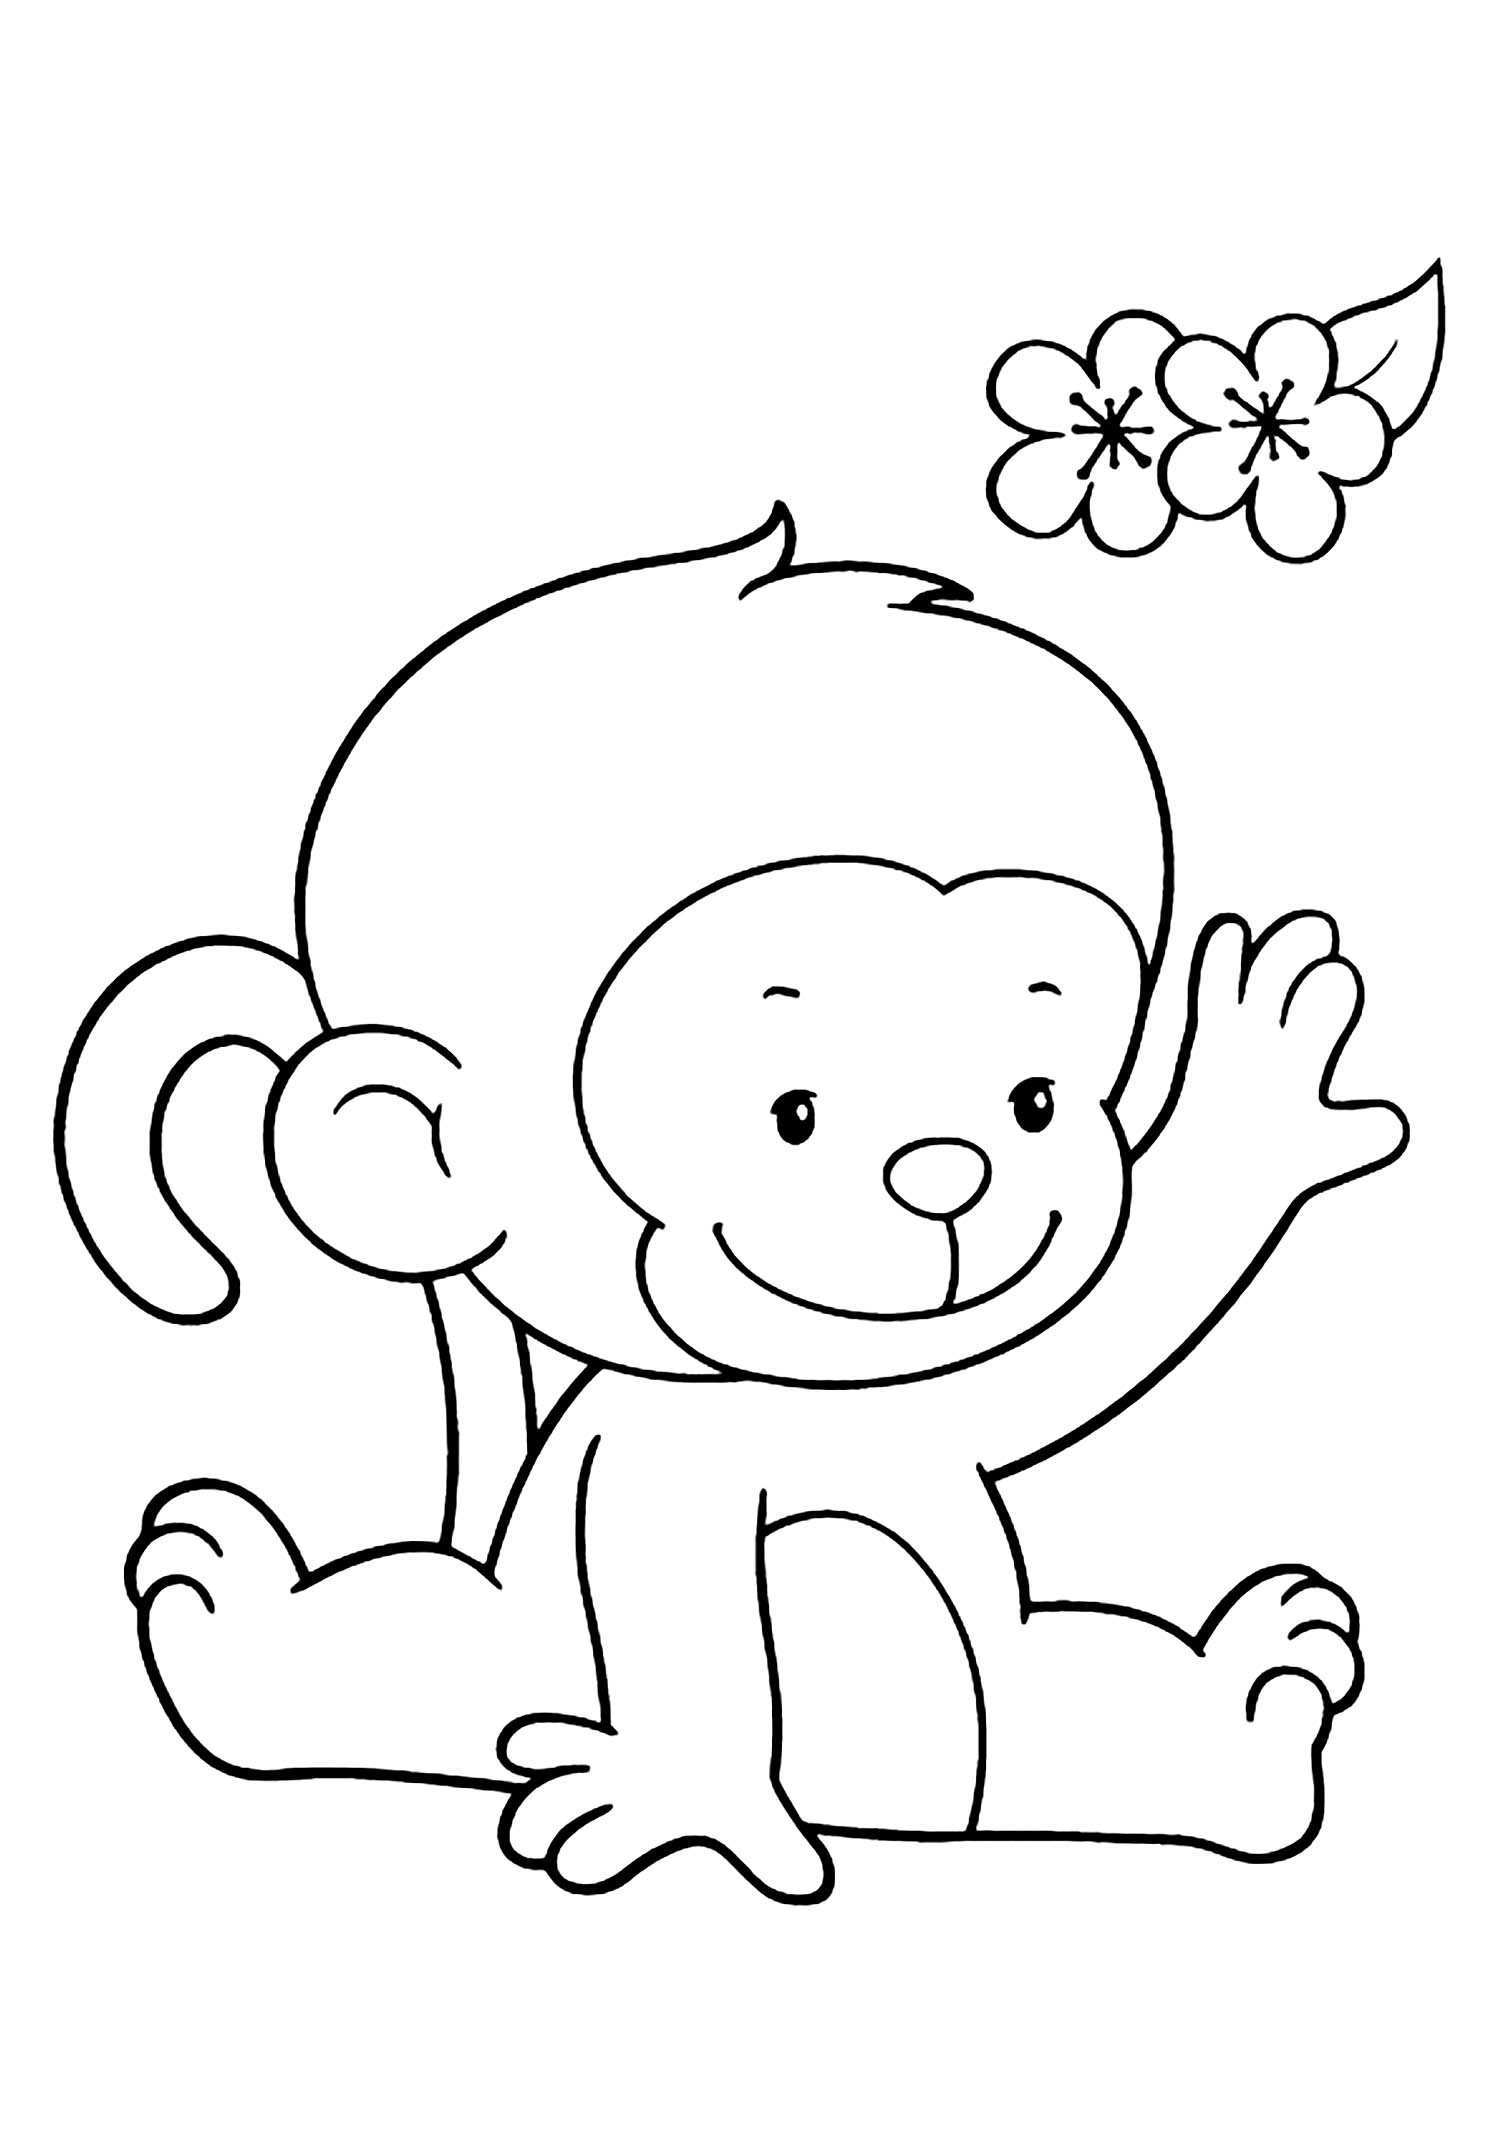 coloring pic of monkey monkeys for kids monkeys kids coloring pages monkey of pic coloring